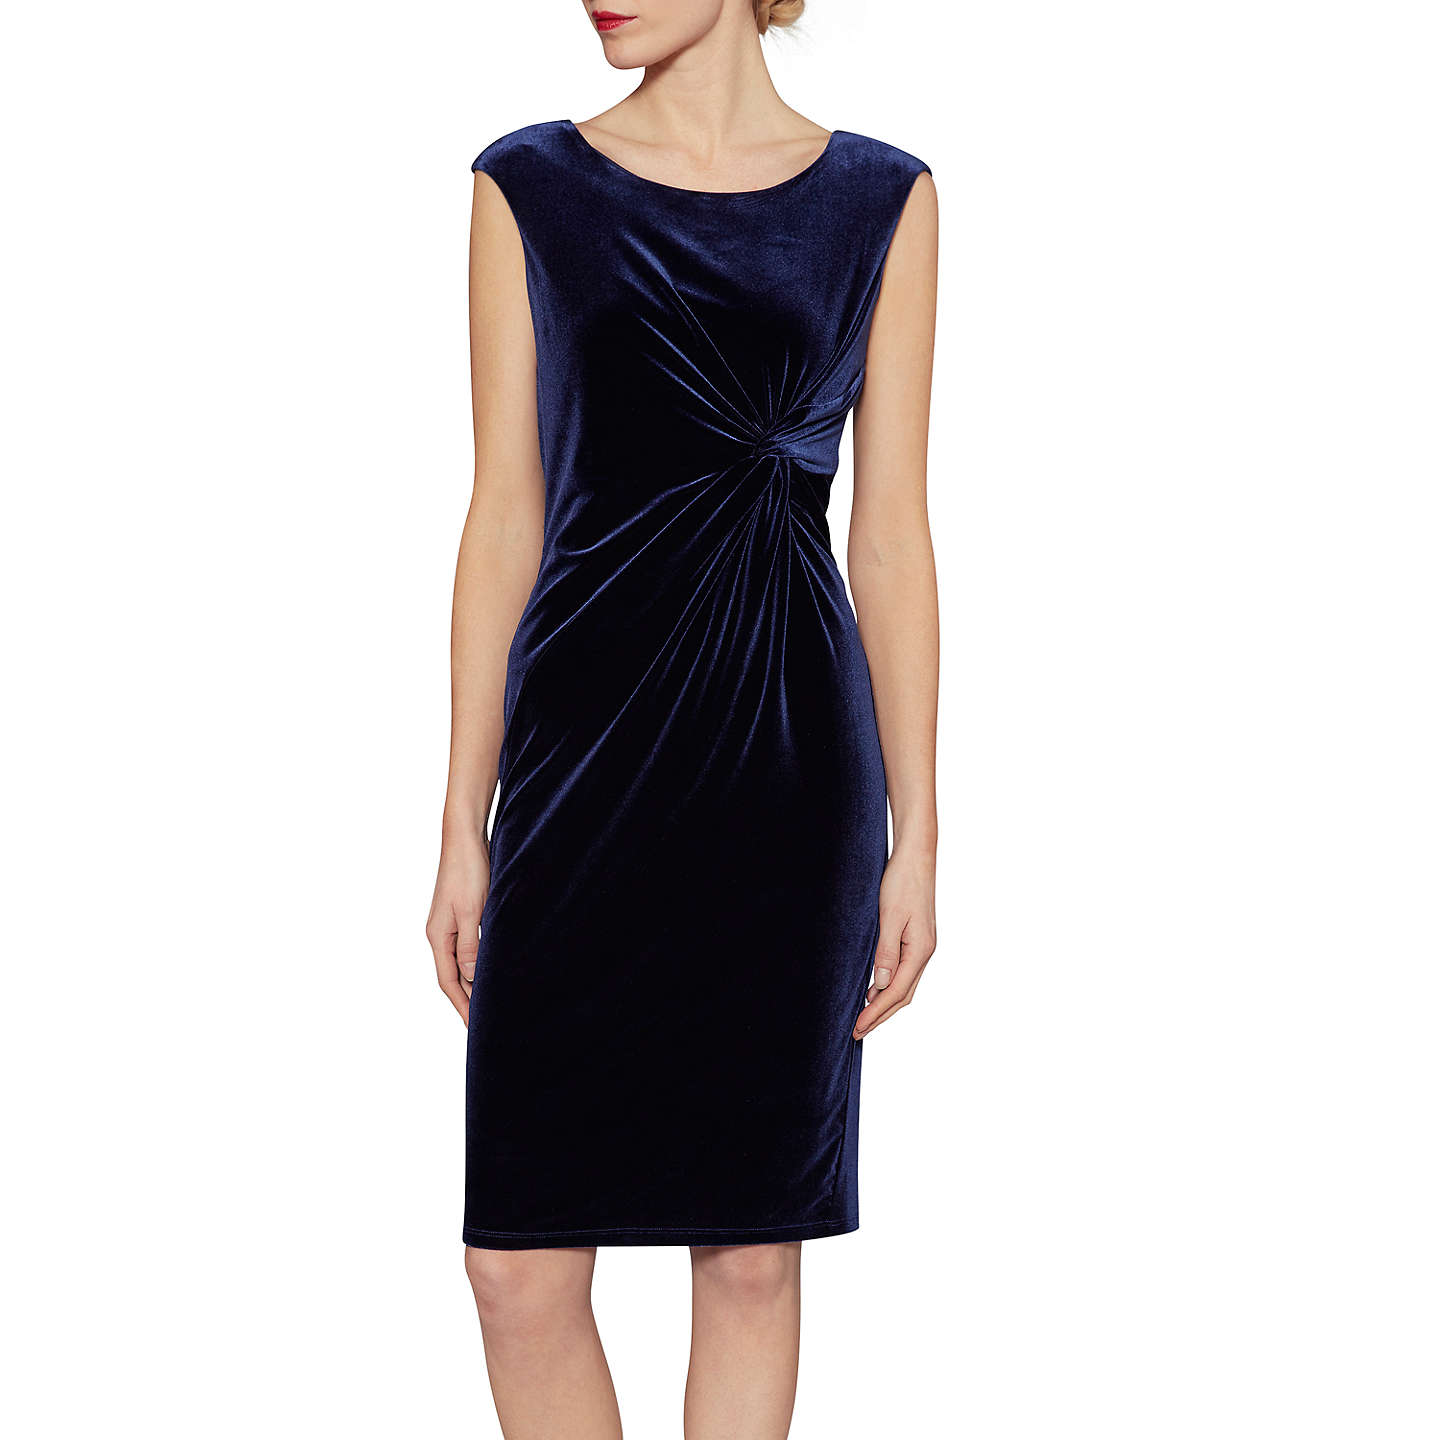 BuyGina Bacconi Abigail Velvet Knot Dress, Navy, 10 Online at johnlewis.com